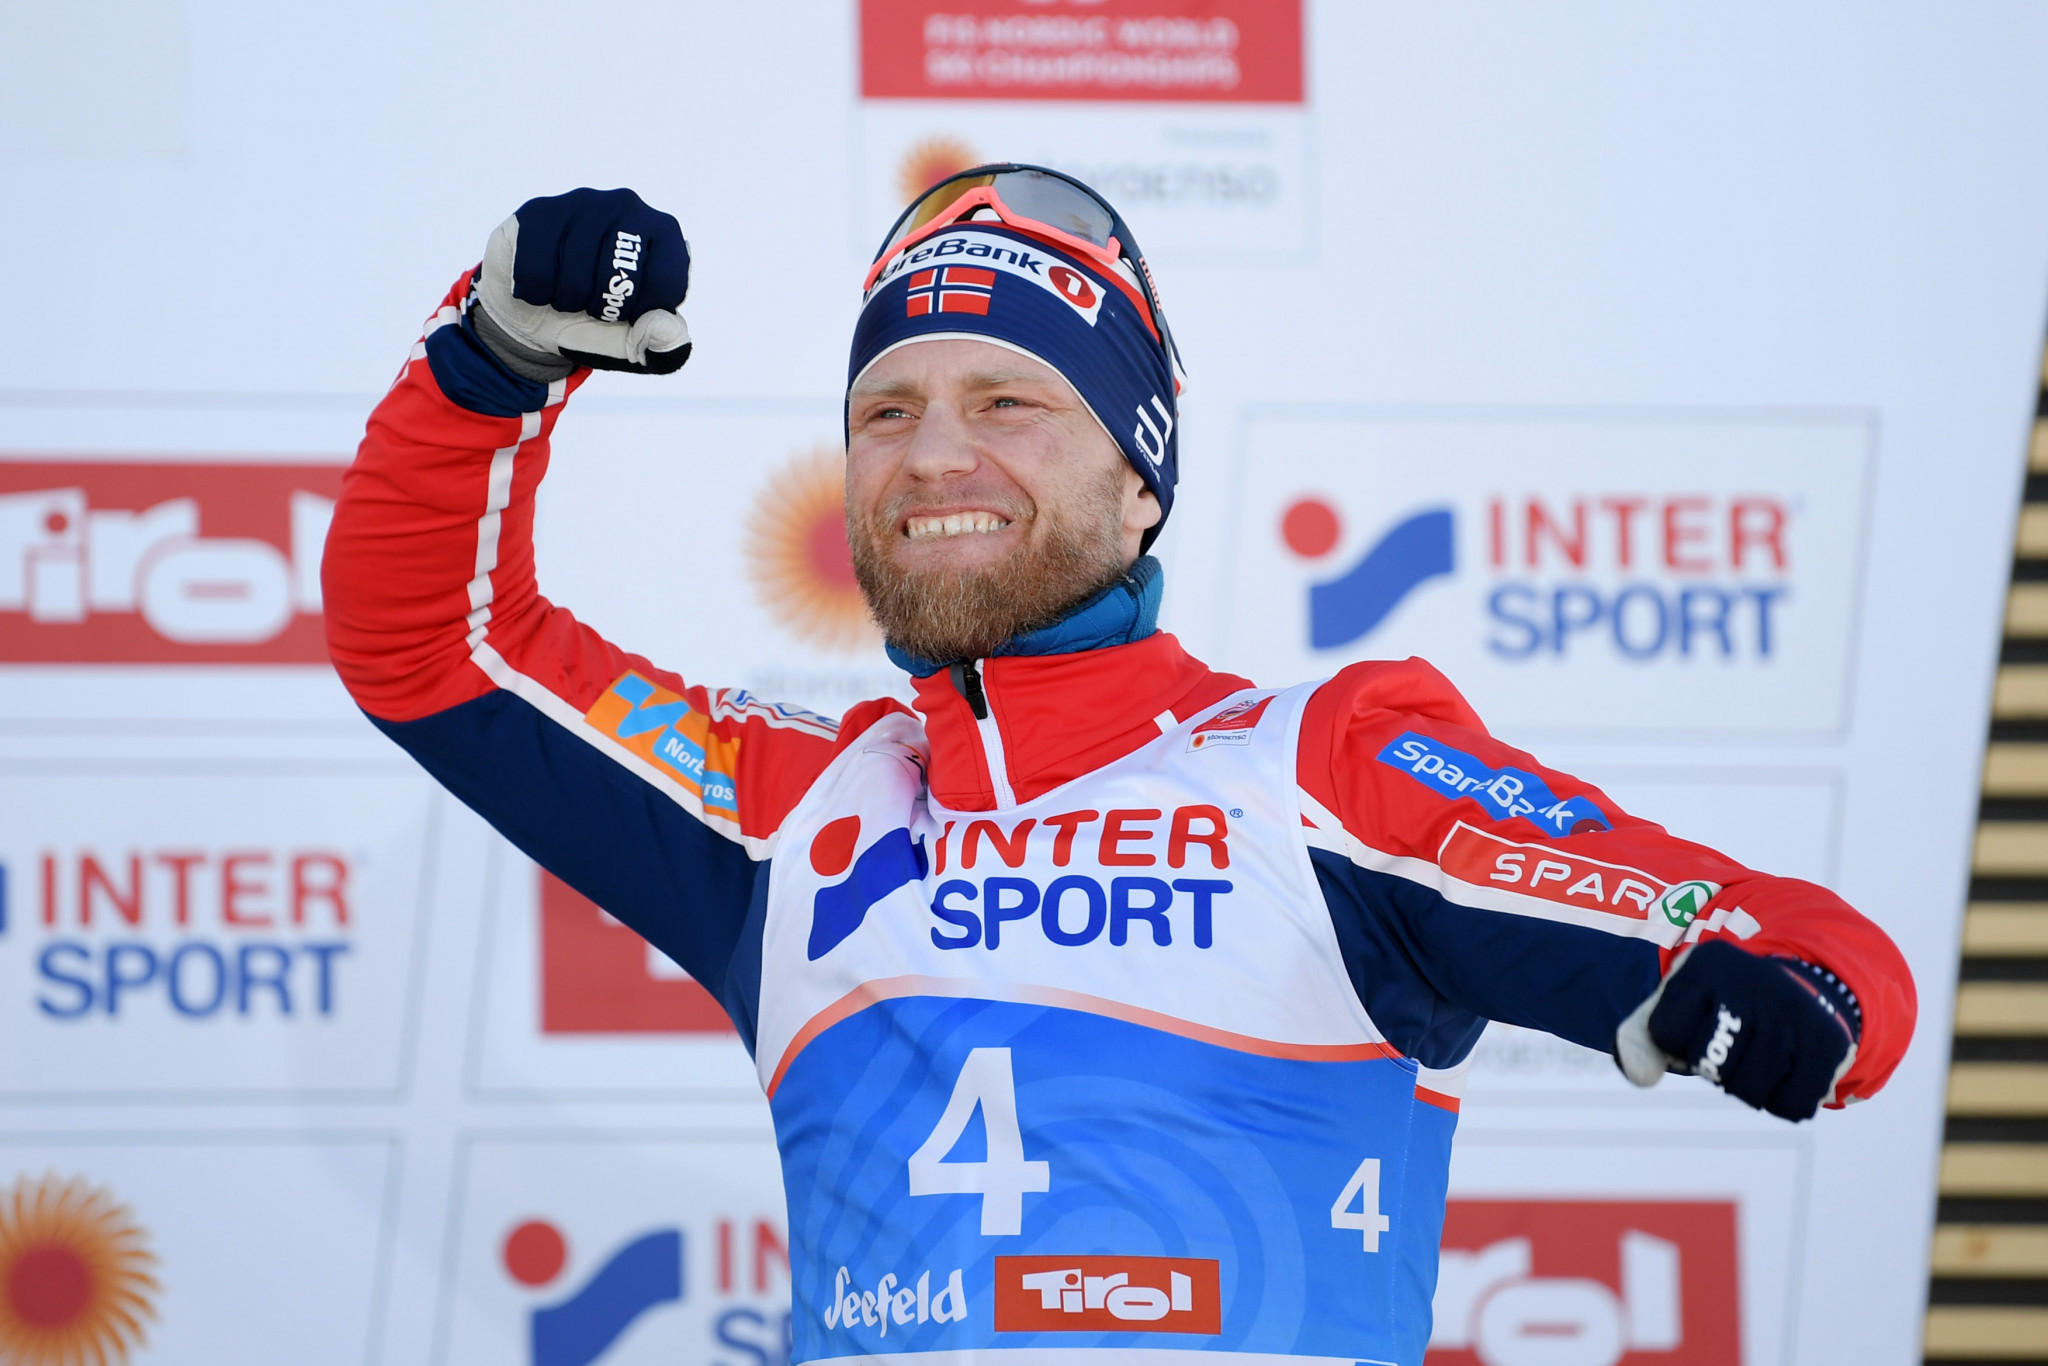 """Sundby win's men's 15km cross-country final as Austrian police smash """"international doping network"""" at World Nordic Skiing Championships"""